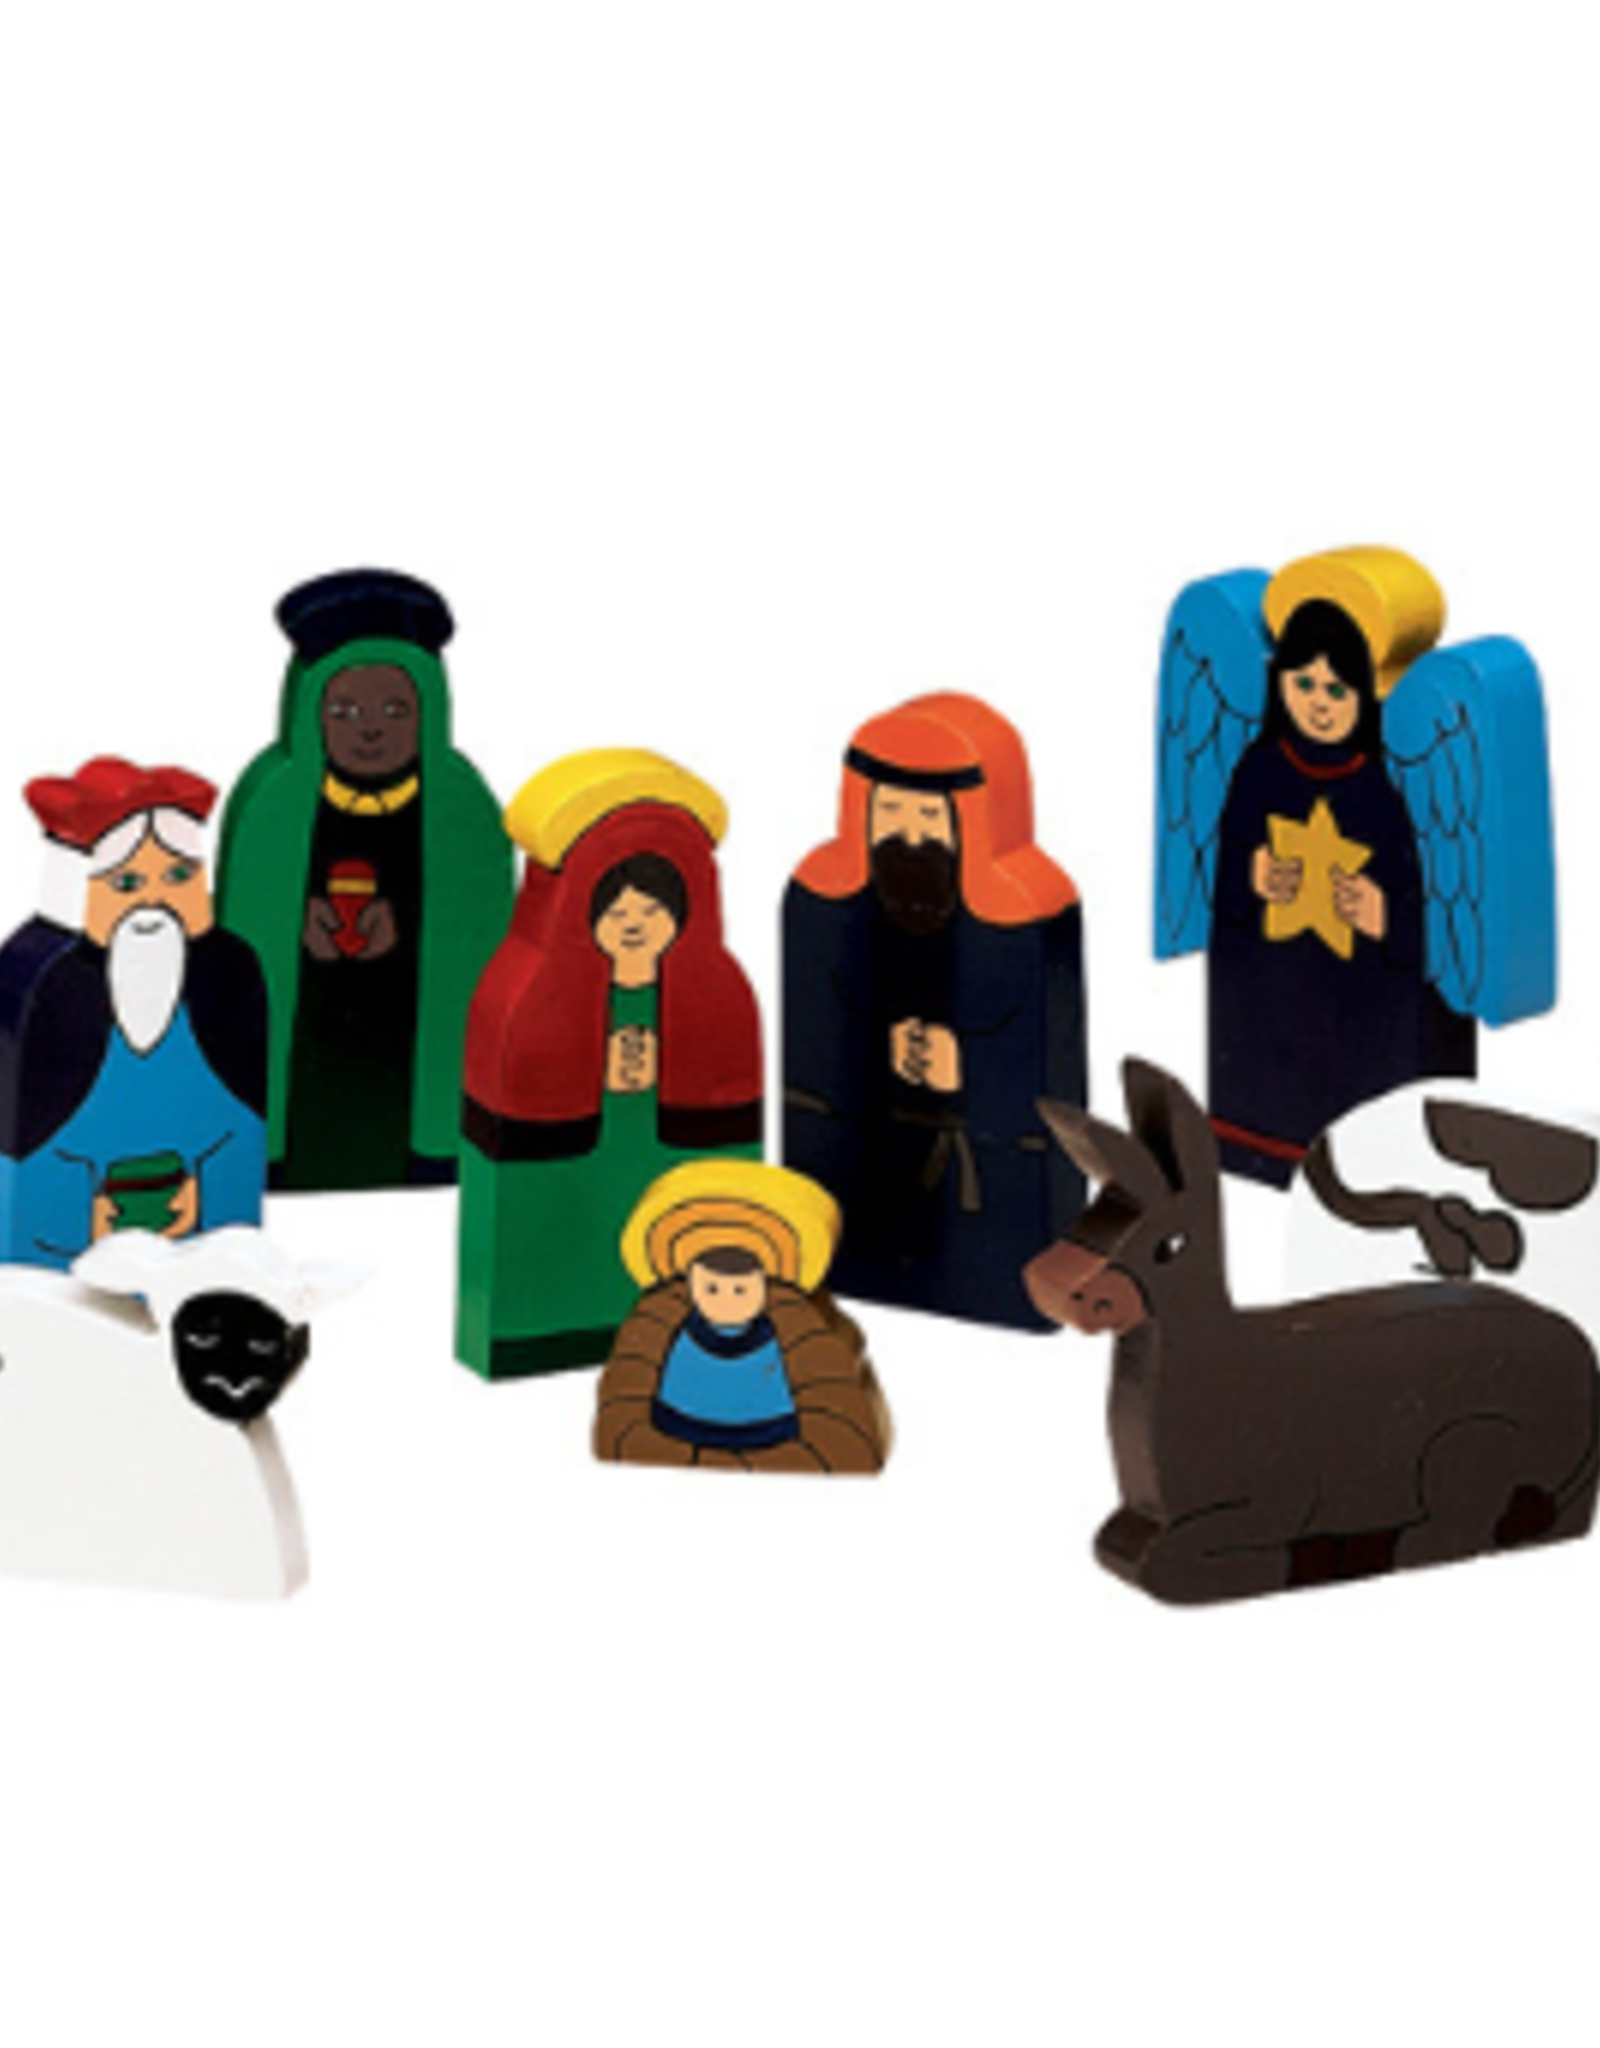 Bright Wood Nativity